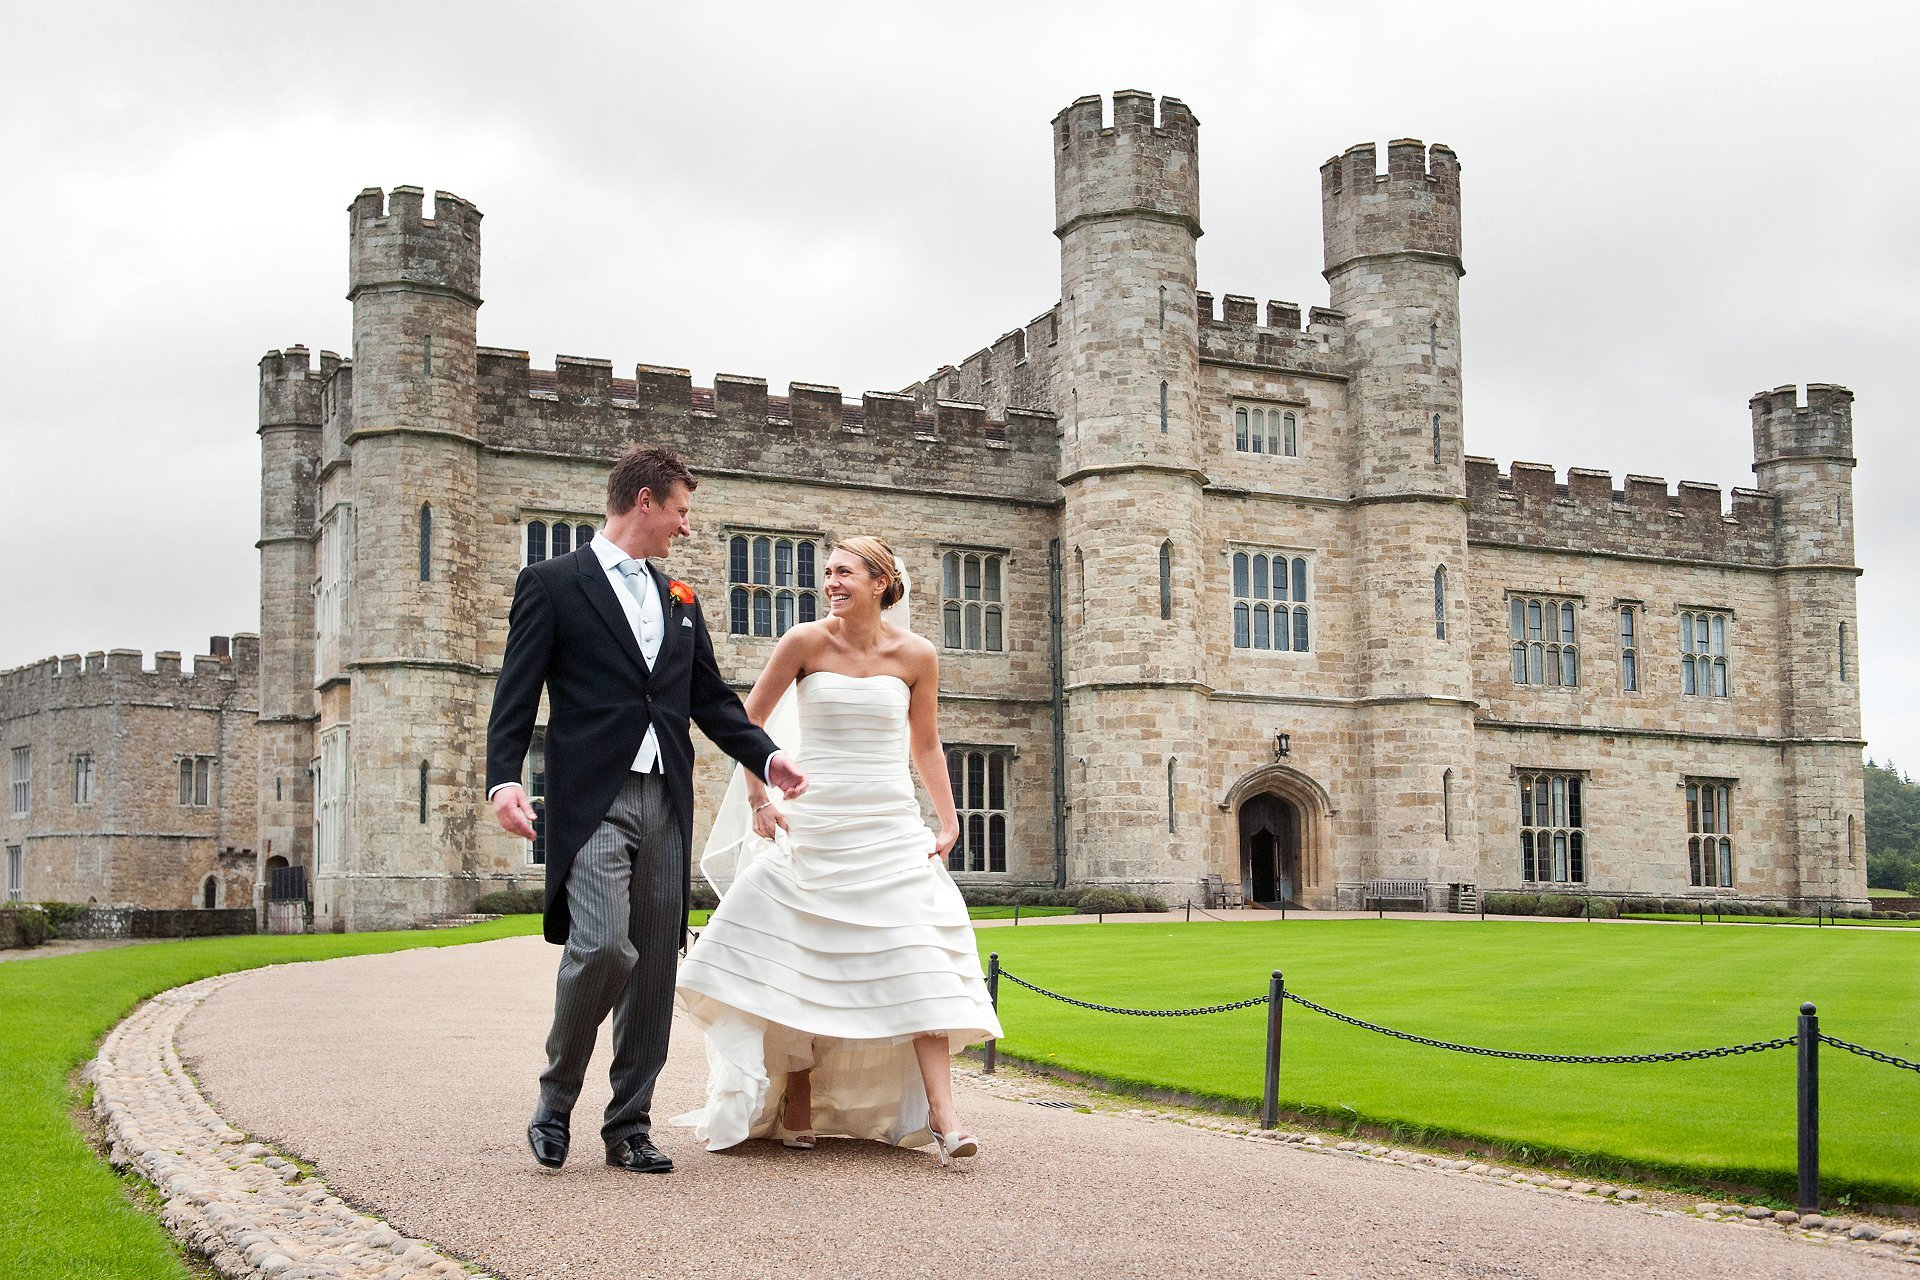 Leeds Castle Autumn Wedding for Leeds Castle wedding photogrpahy by specialist Emma Duggan Photography who offers small wedding coverage from just one hour here the bride and groom are walking in front of Leeds Castle after their church wedding in nearby Leeds Village